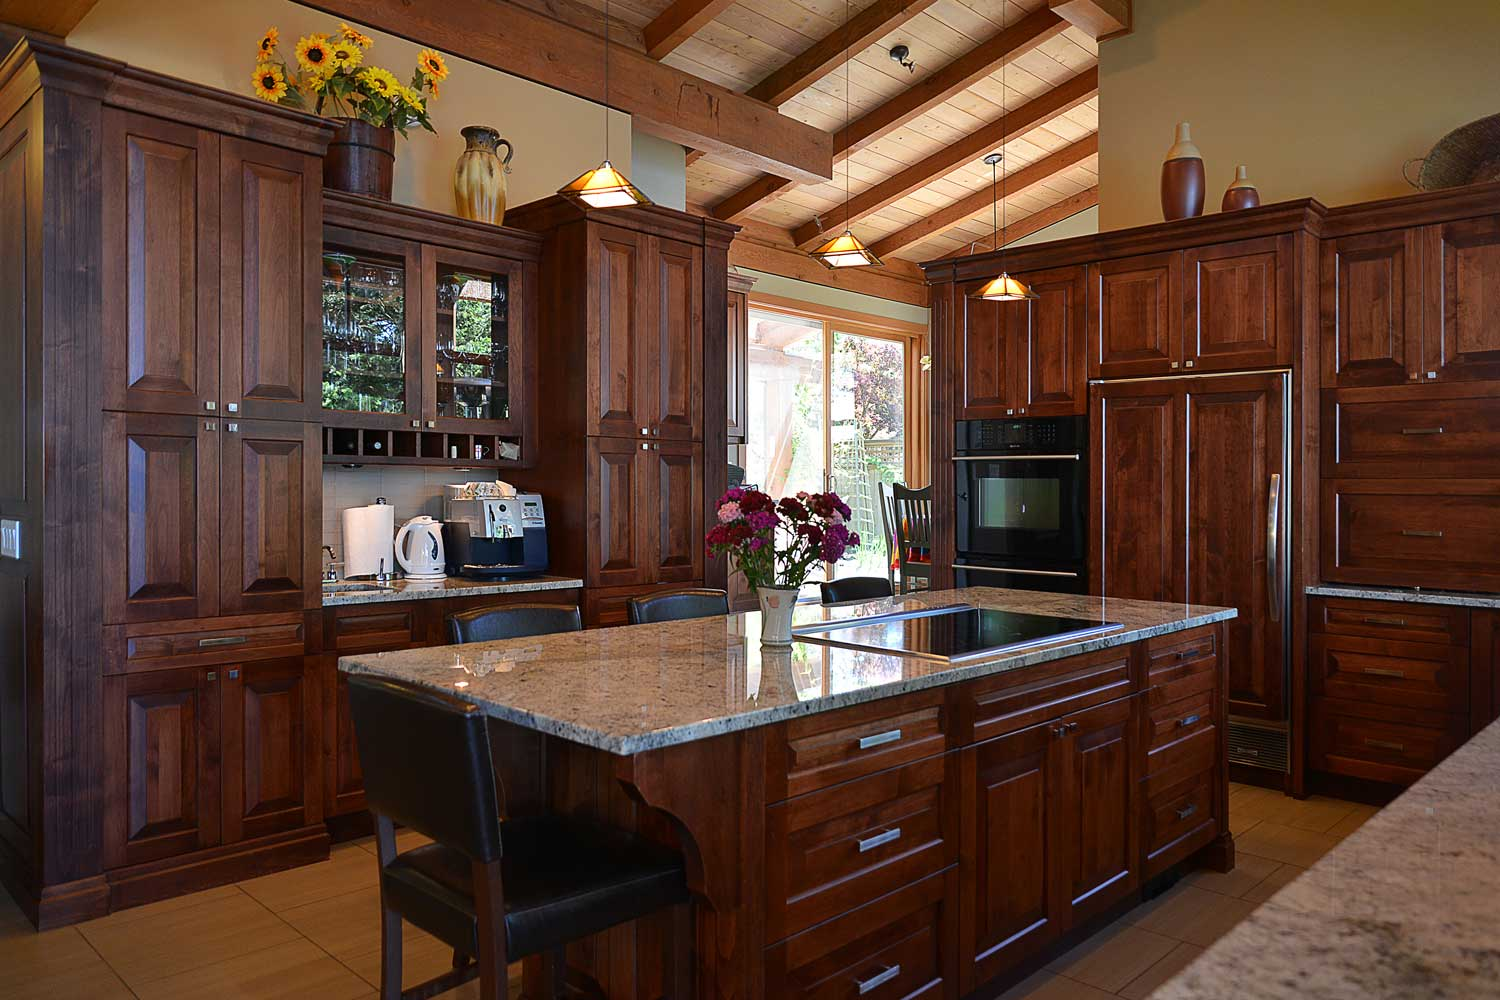 A rich, mahogany-coloured kitchen, with vaulted ceilings, in this luxury vacation house, is of top-chef quality.